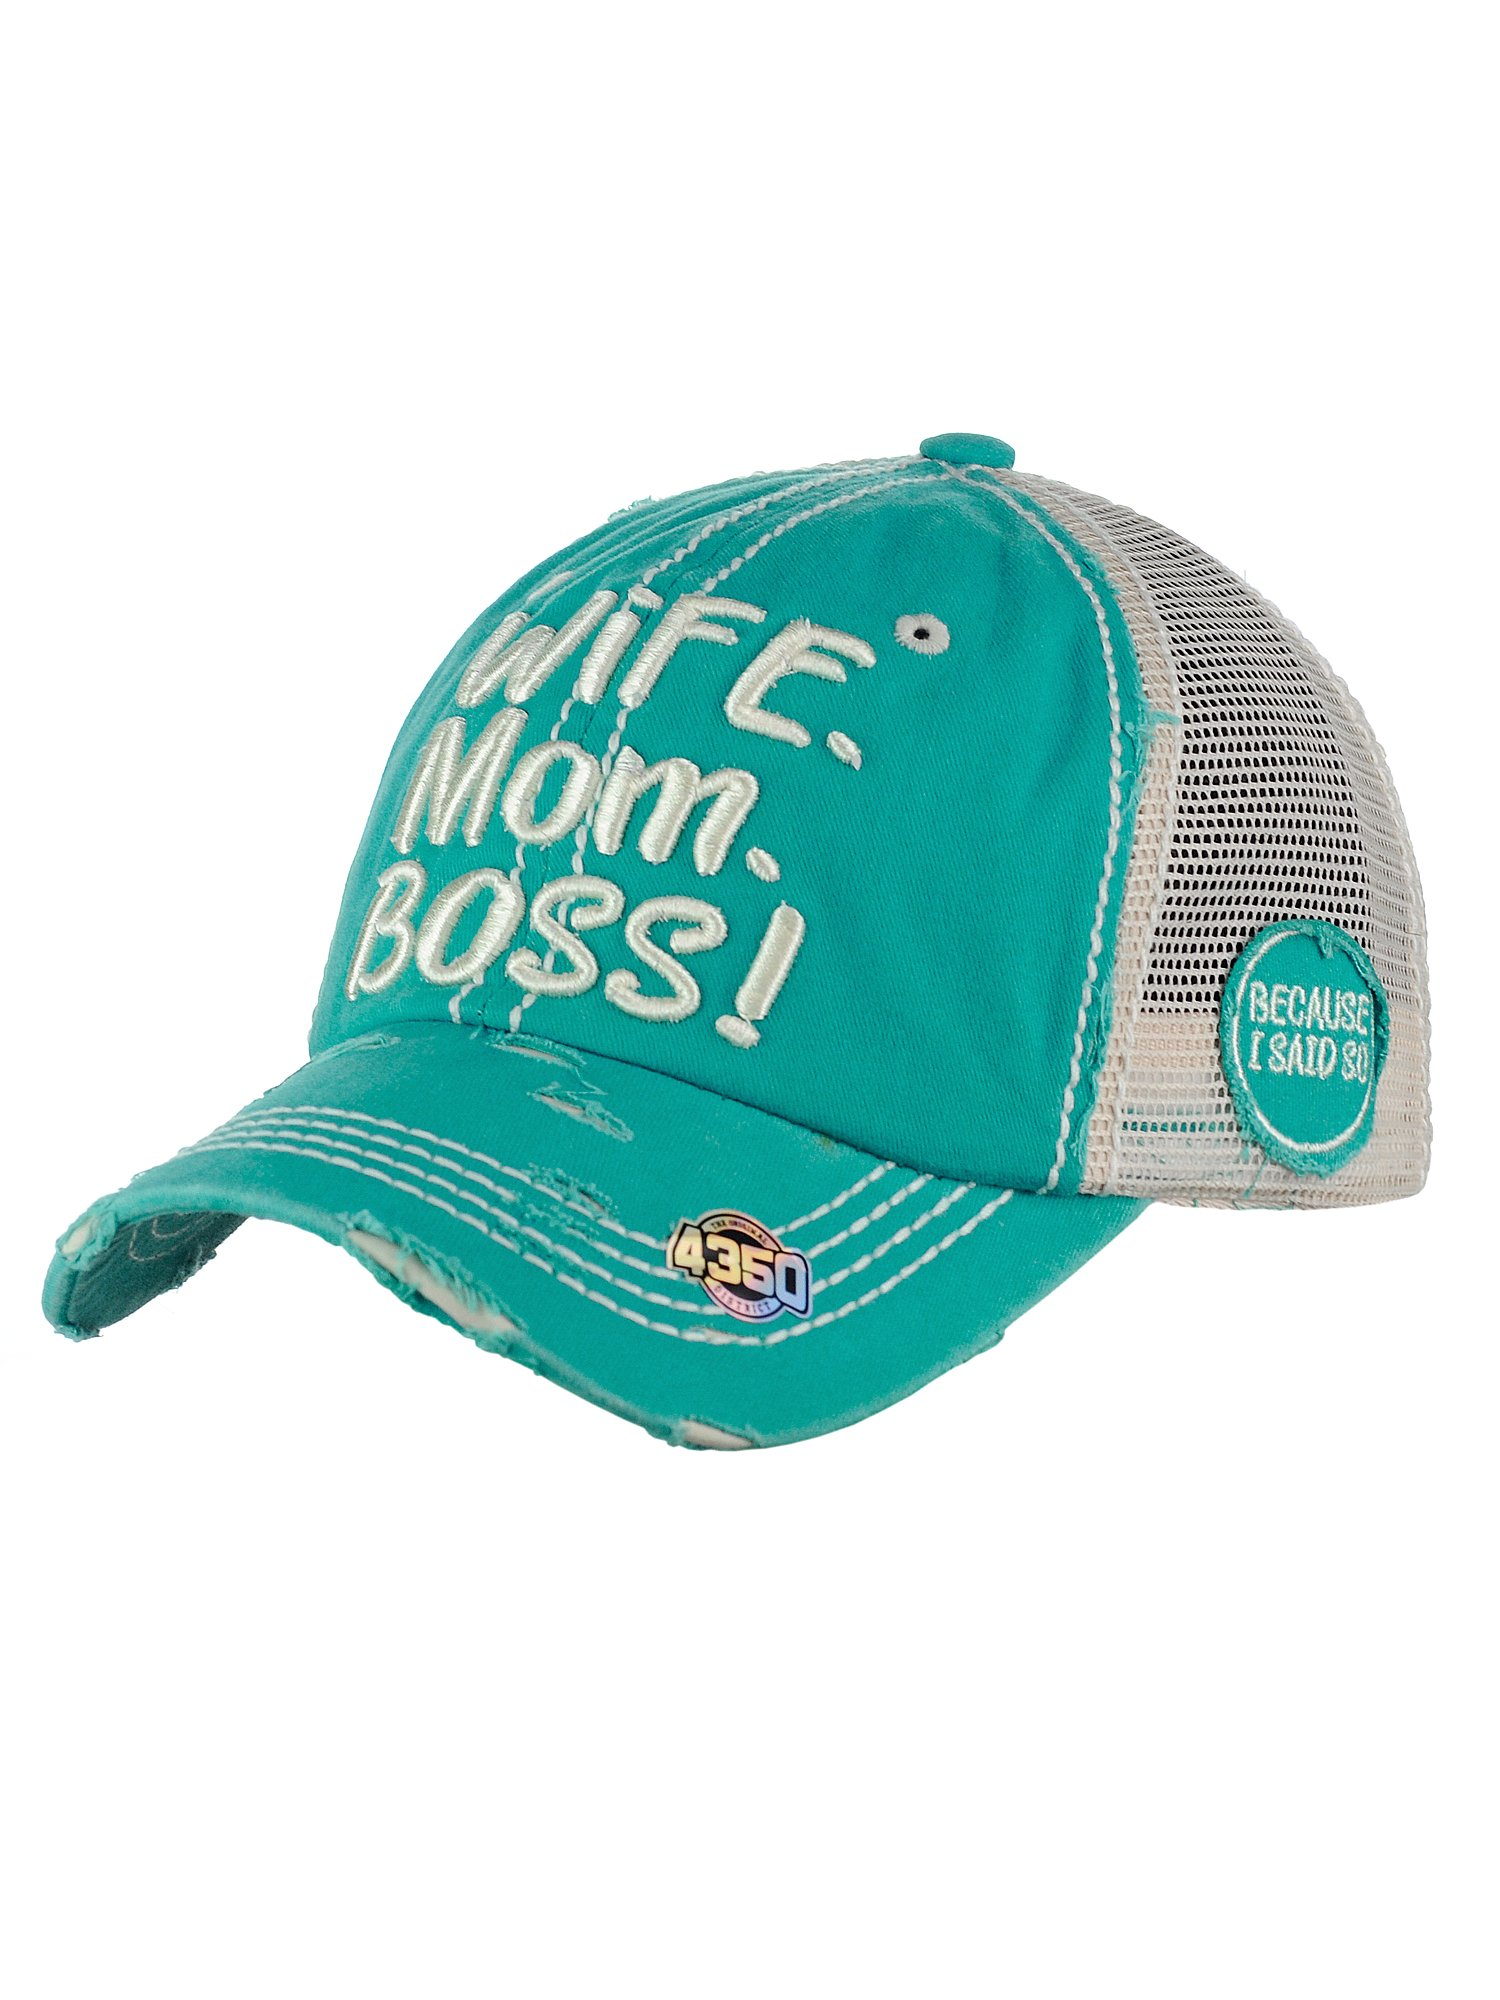 NYFASHION101 Women's Distressed Unconstructed Embroidered Mesh Baseball Dad Hat, Boss, Turquoise